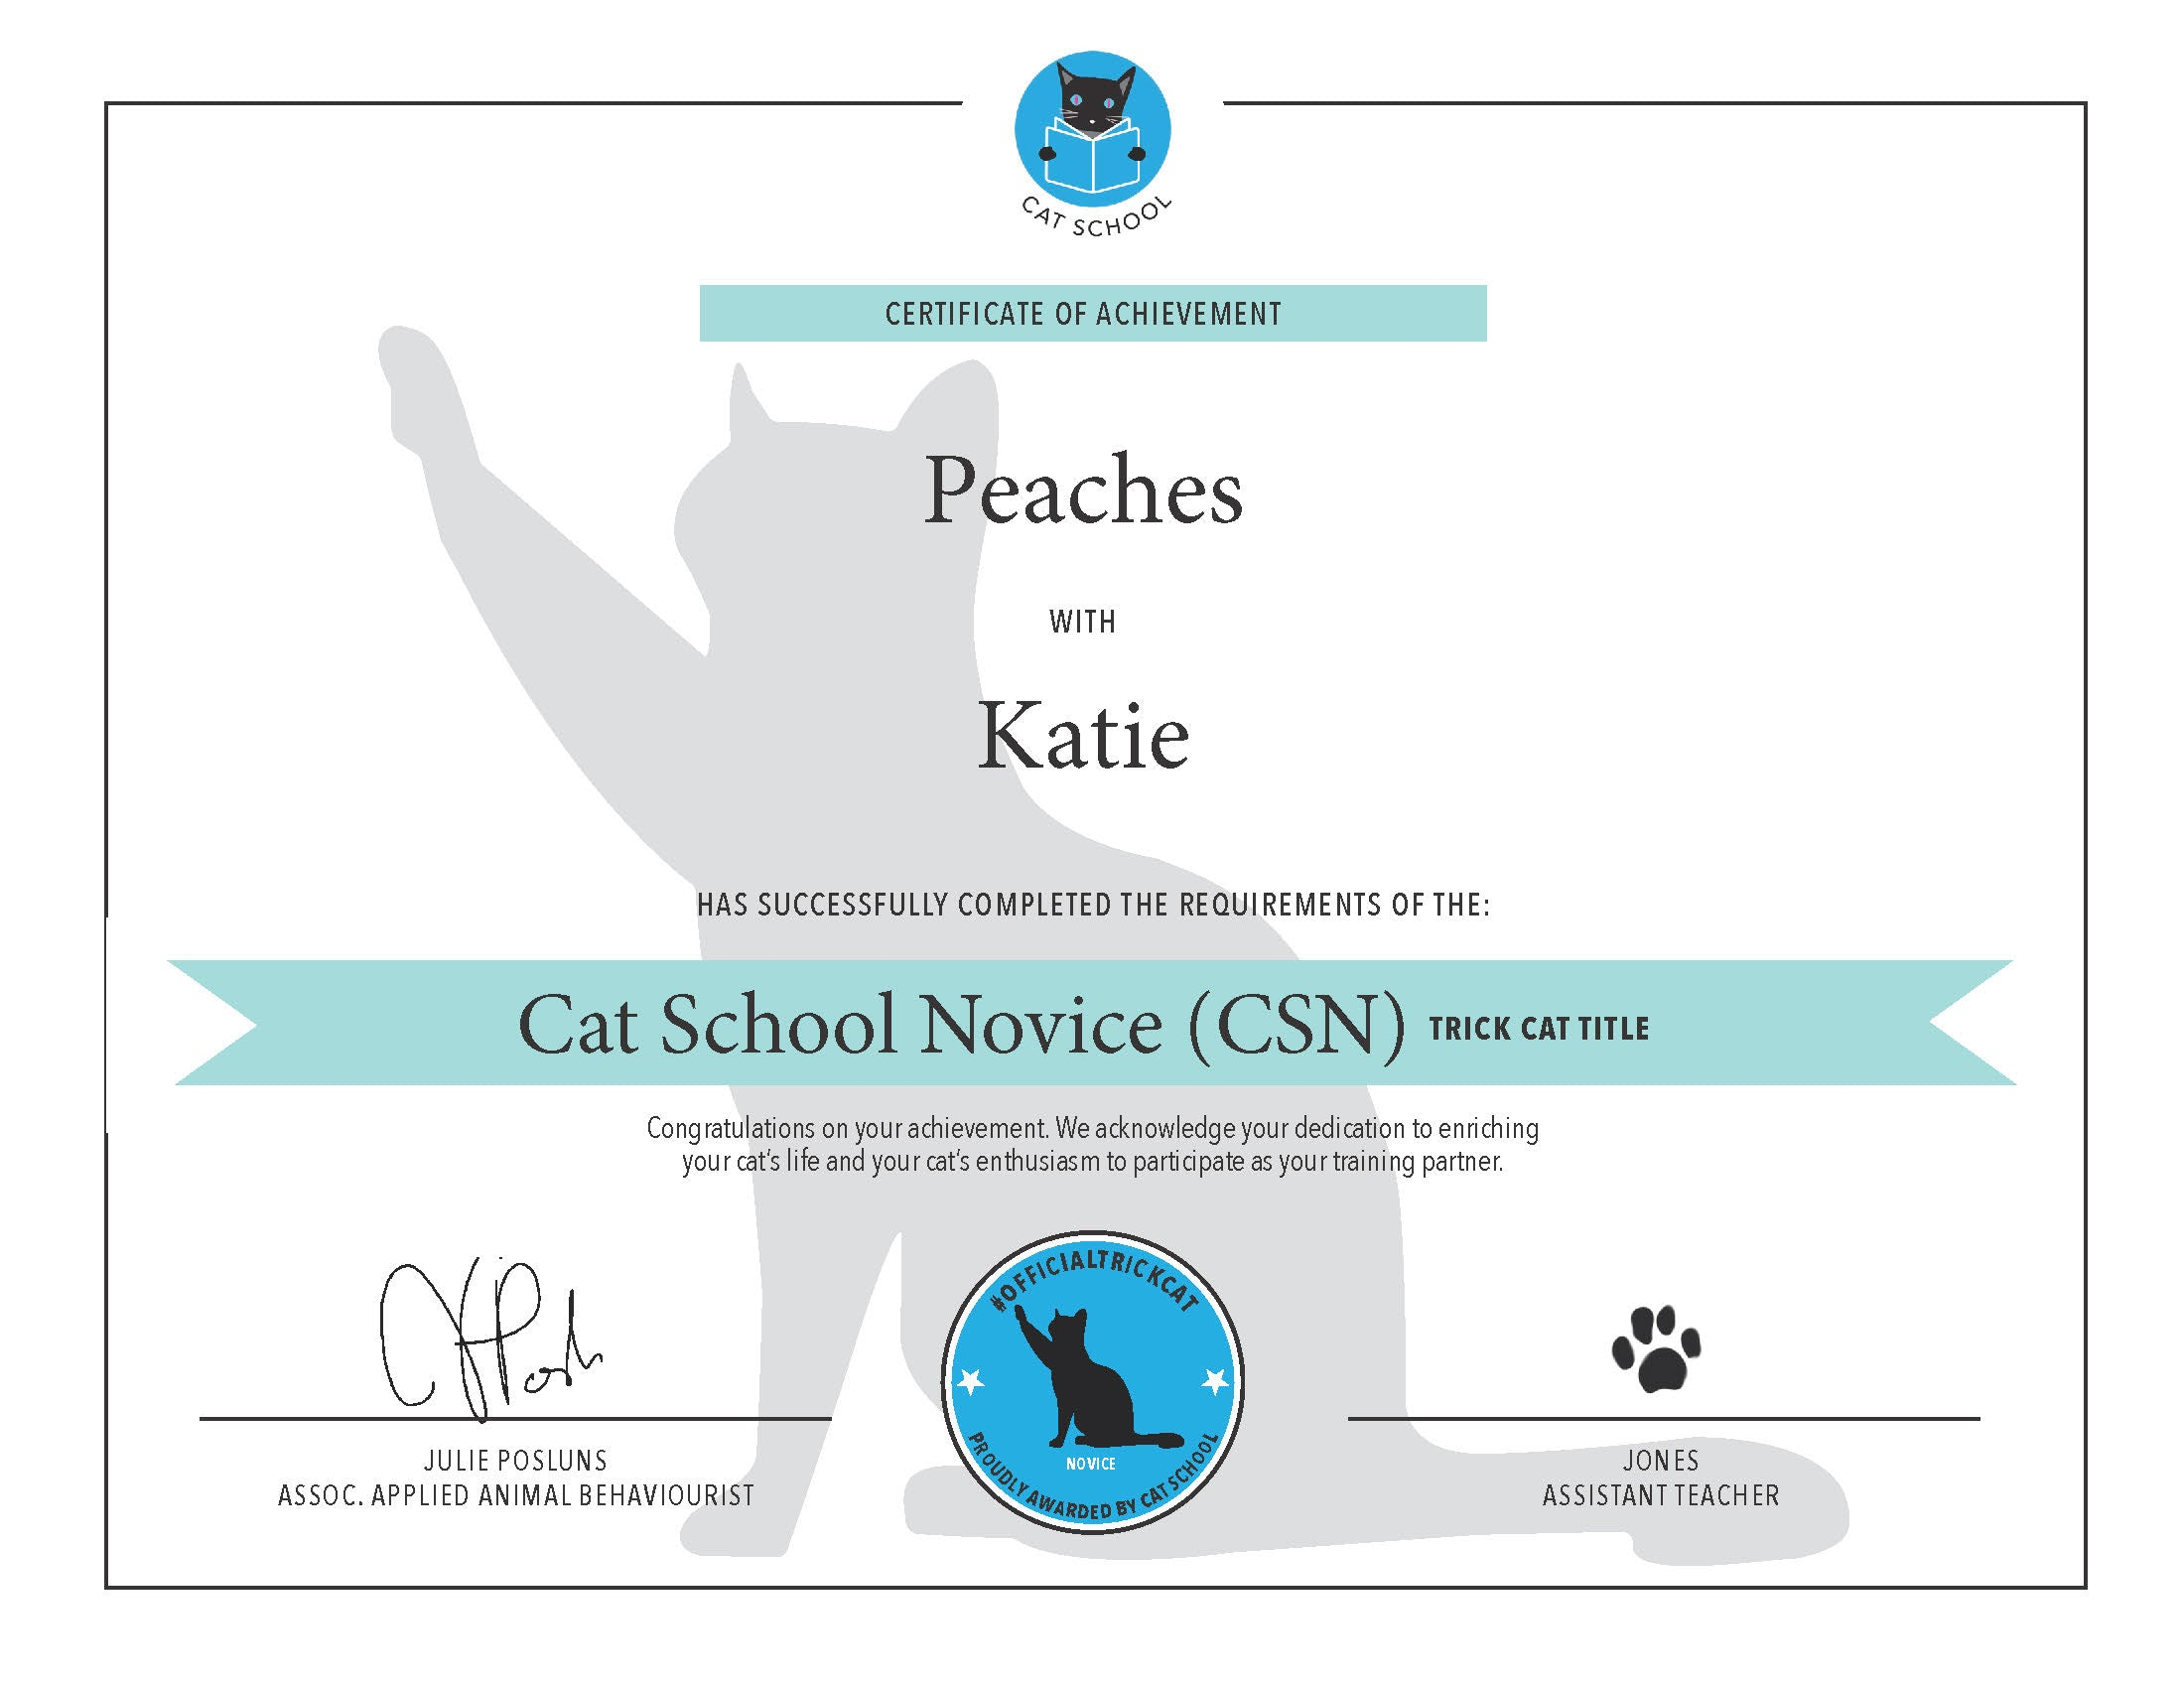 Novice Trick Cat Certification